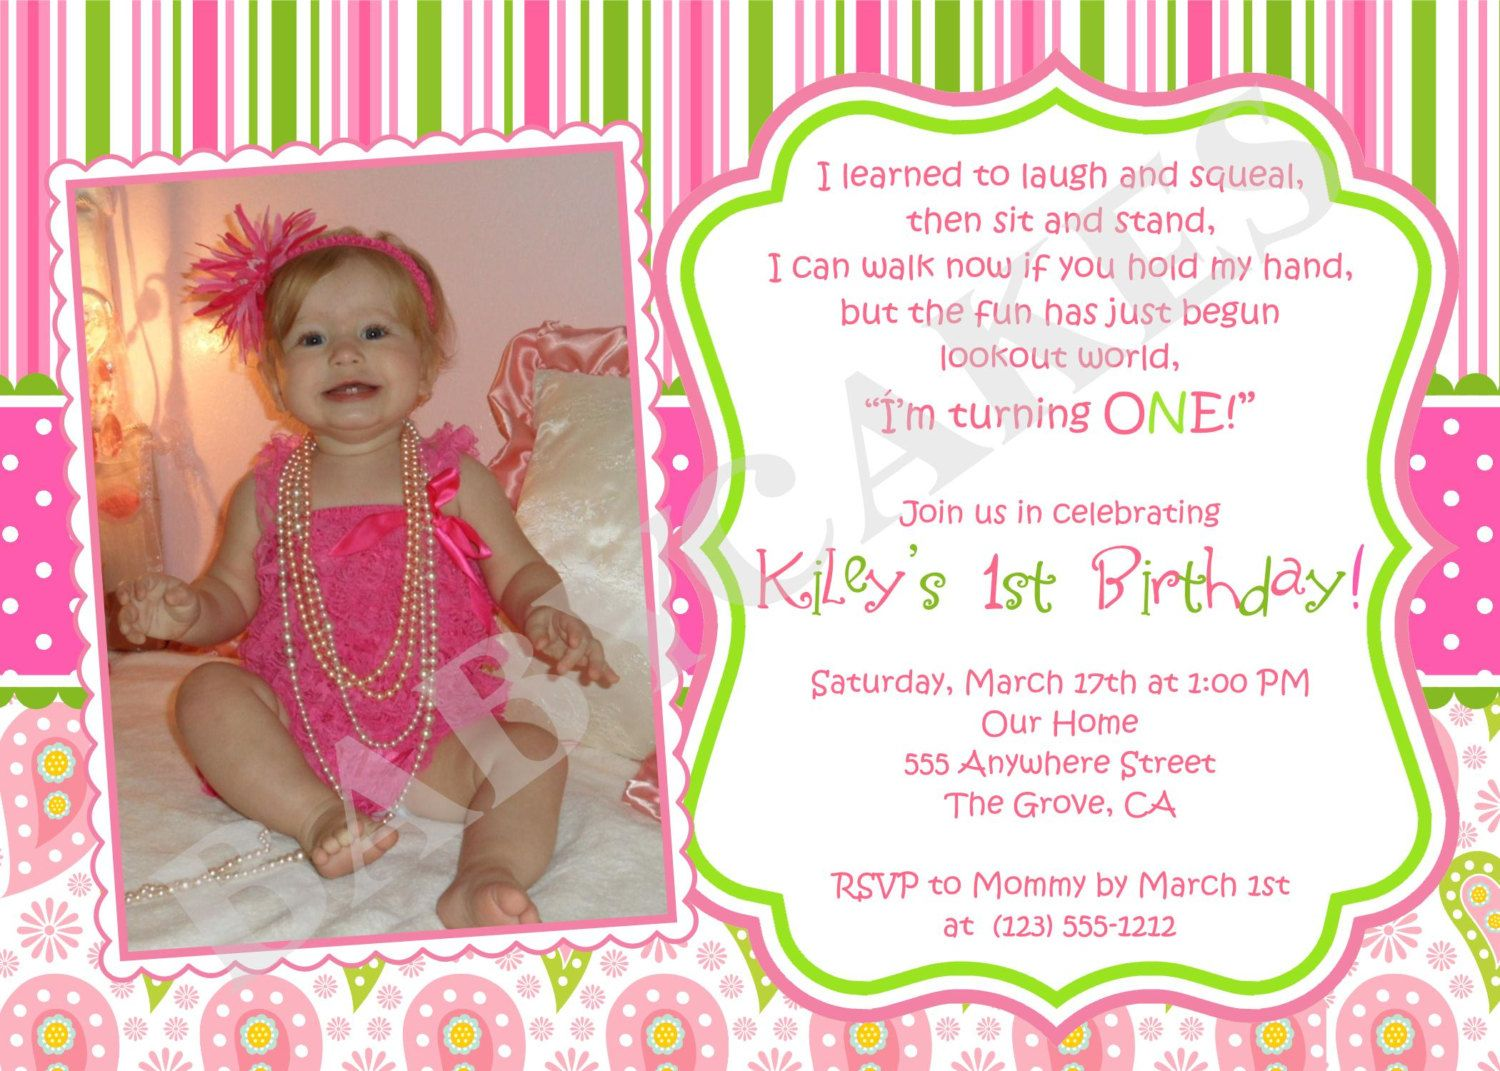 1st Birthday Invitation Photo Invite Diy Print Your Own 12 00 V Birthday Invitation Message 1st Birthday Invitation Wording 1st Birthday Party Invitations